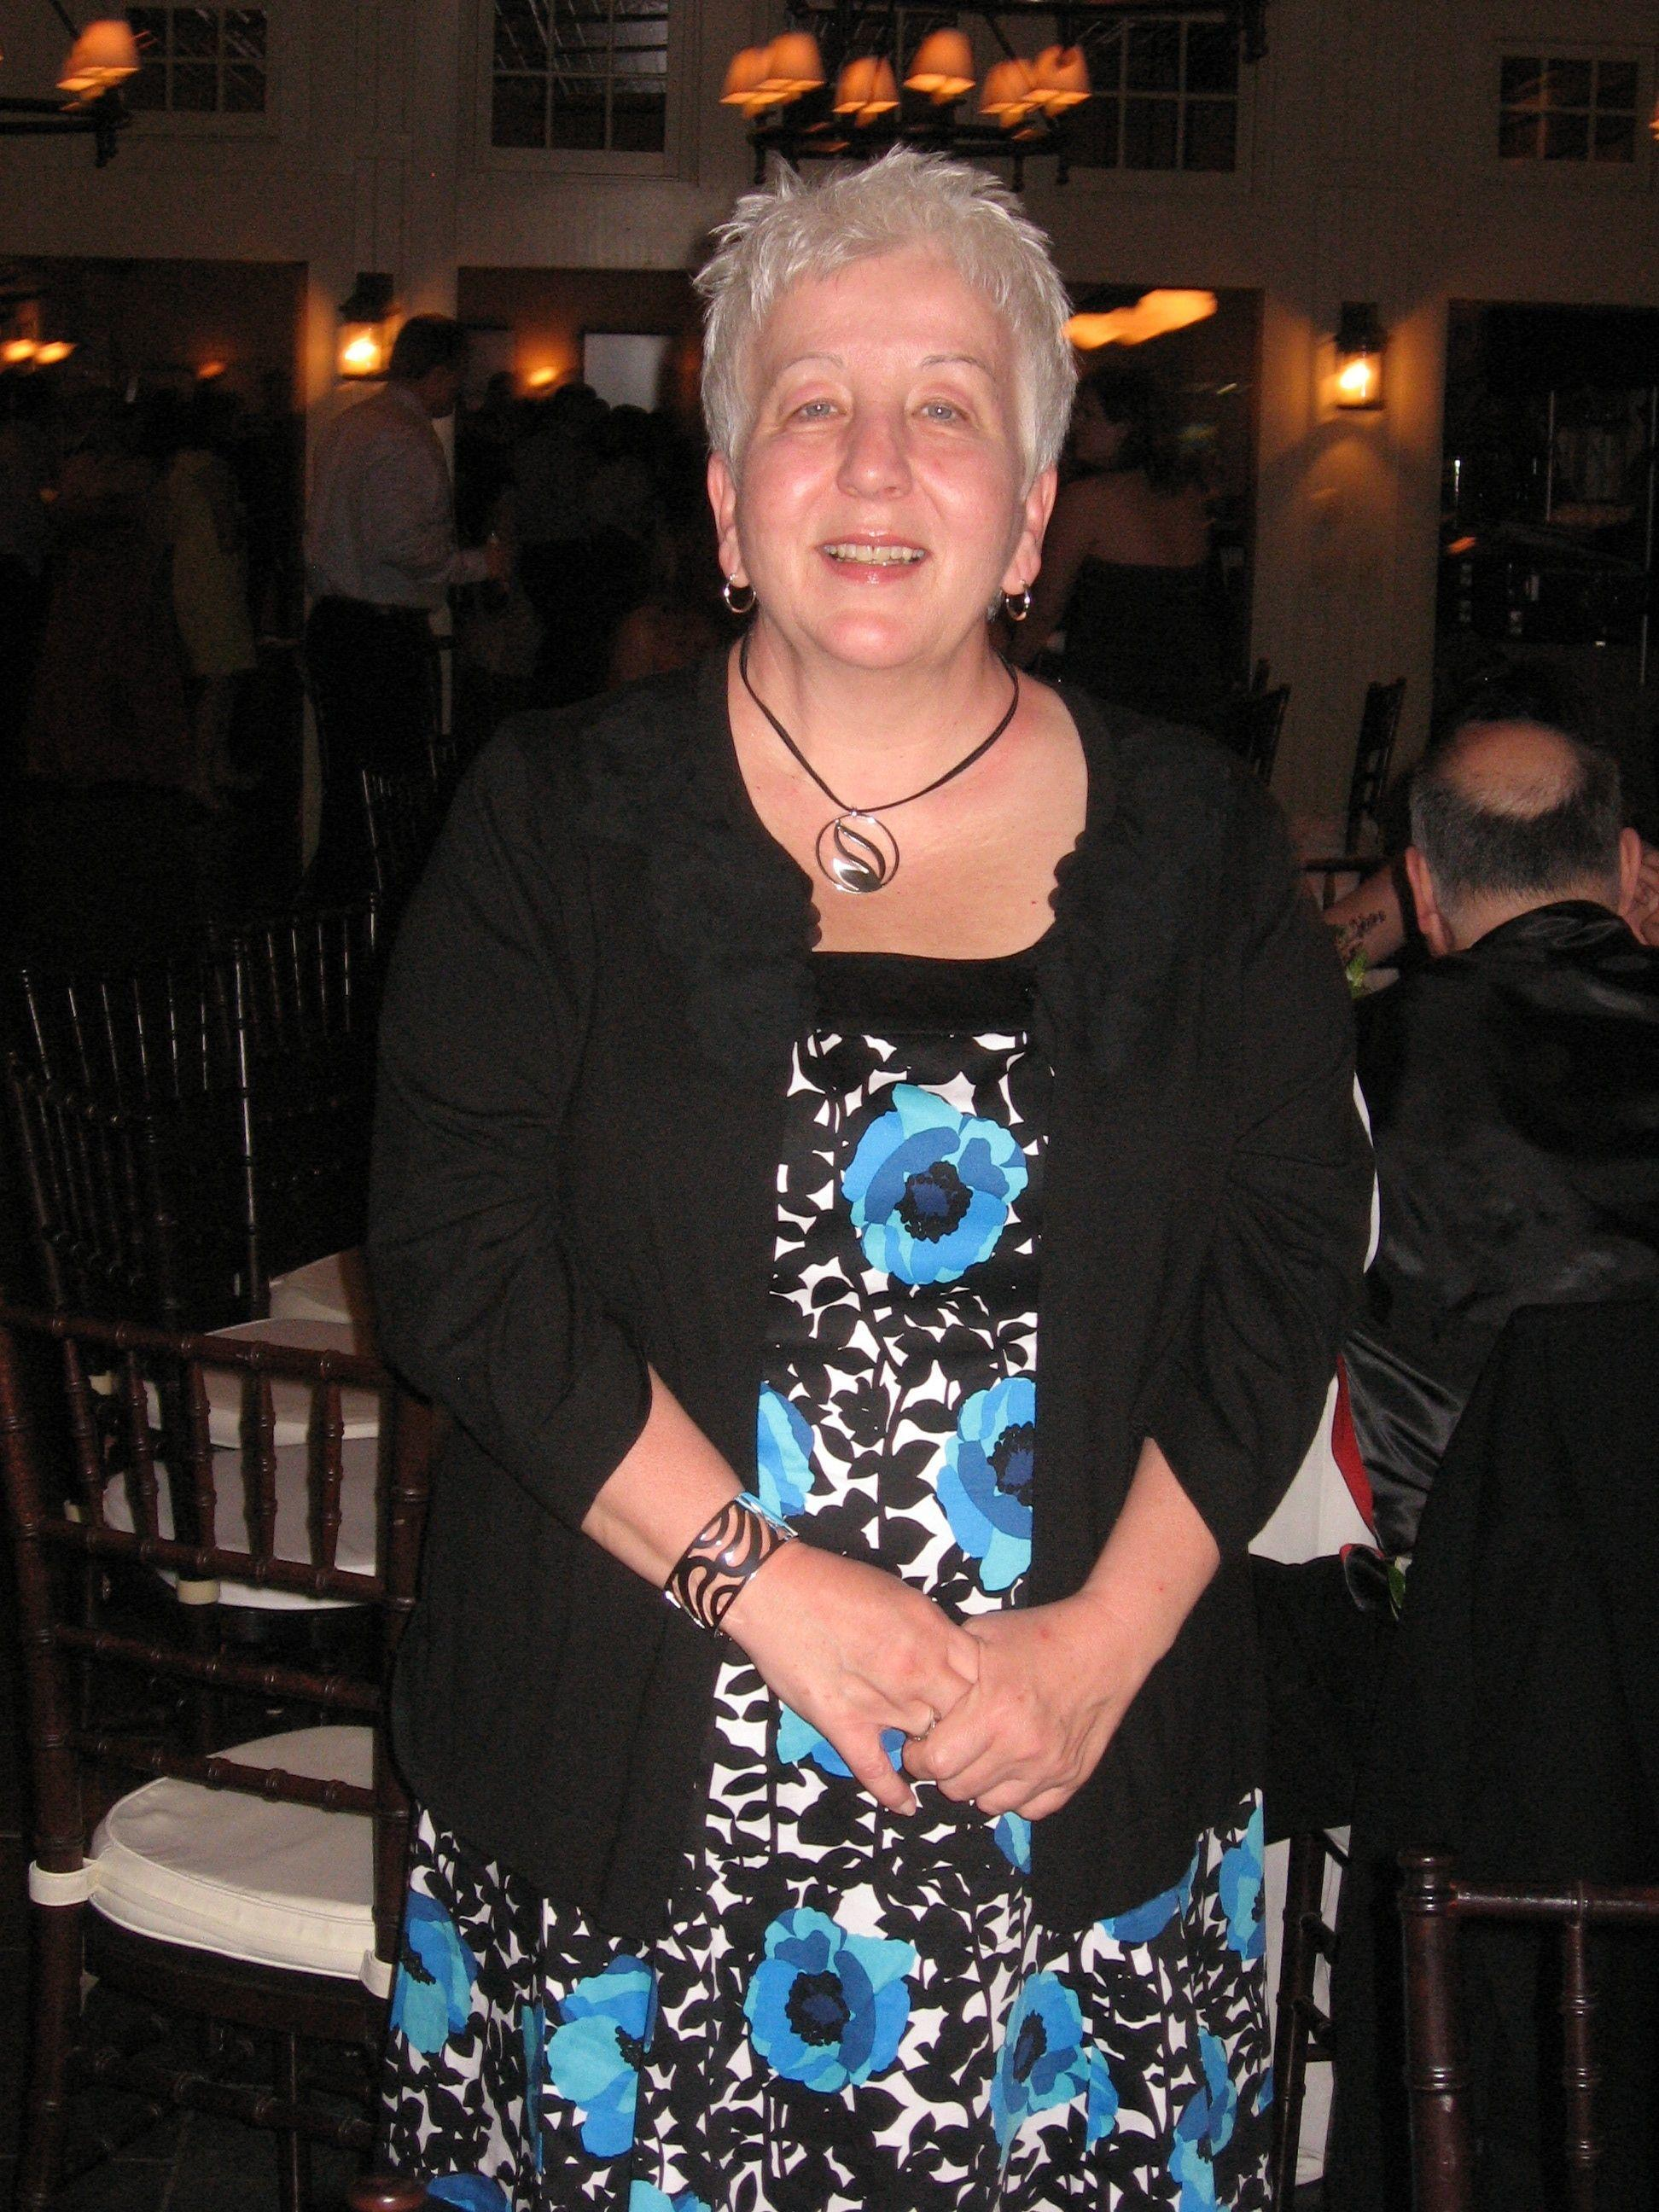 singles over 50 in merrimack Search single 50+ men in merrimack   search single 50+ women in   marymechlimg1953 merrimack, nh  love hearing about other people's day.